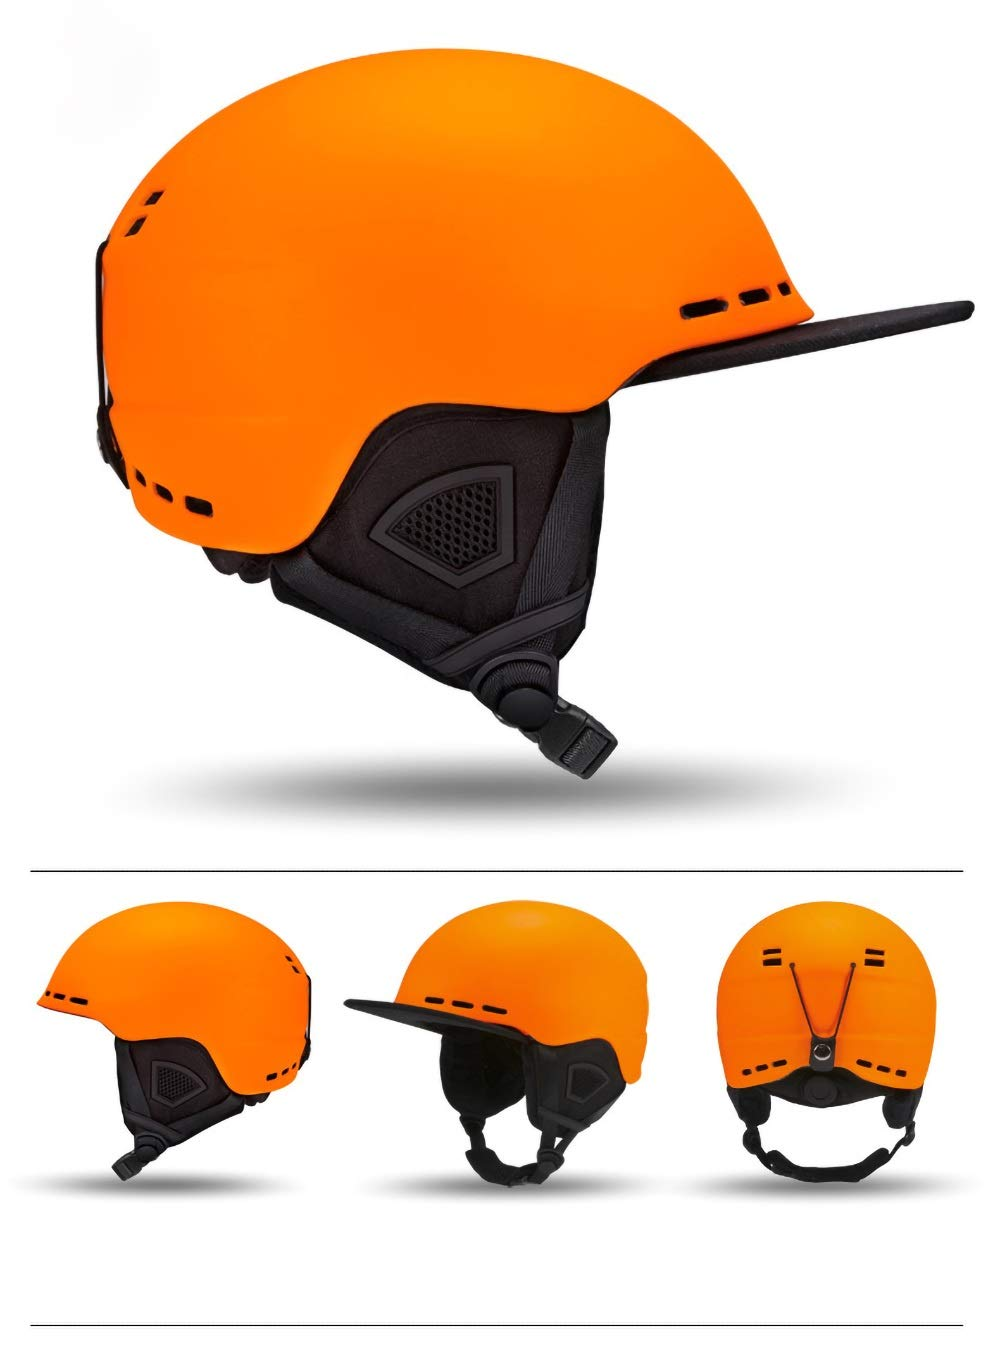 Kids Helmet, Children Safety Adjustable Bicycle Helmet for Cycling, Skating, Scooting, Skiing, Bike (56-59cm) (Color : Orange)